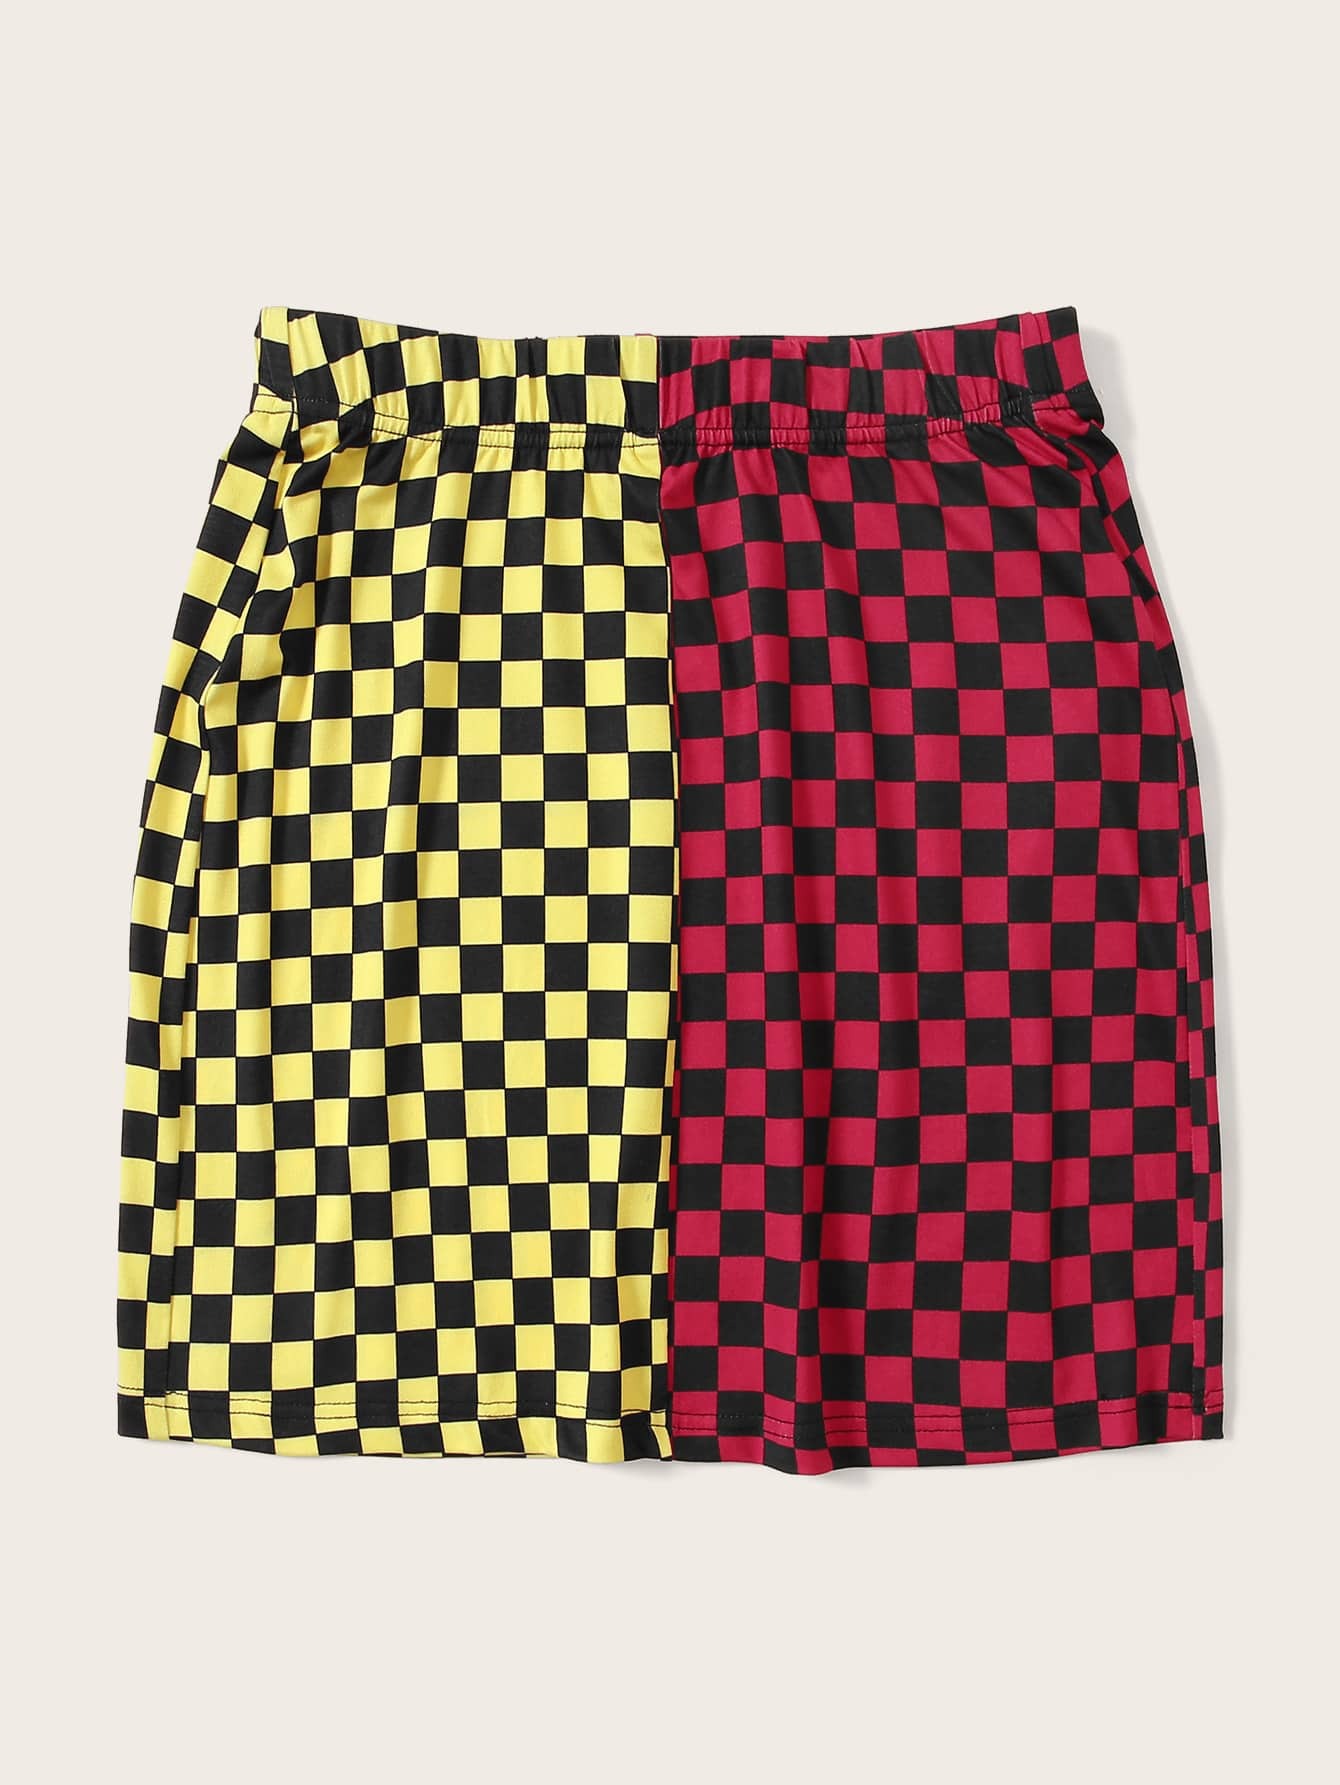 This Or That Checkered Skirt